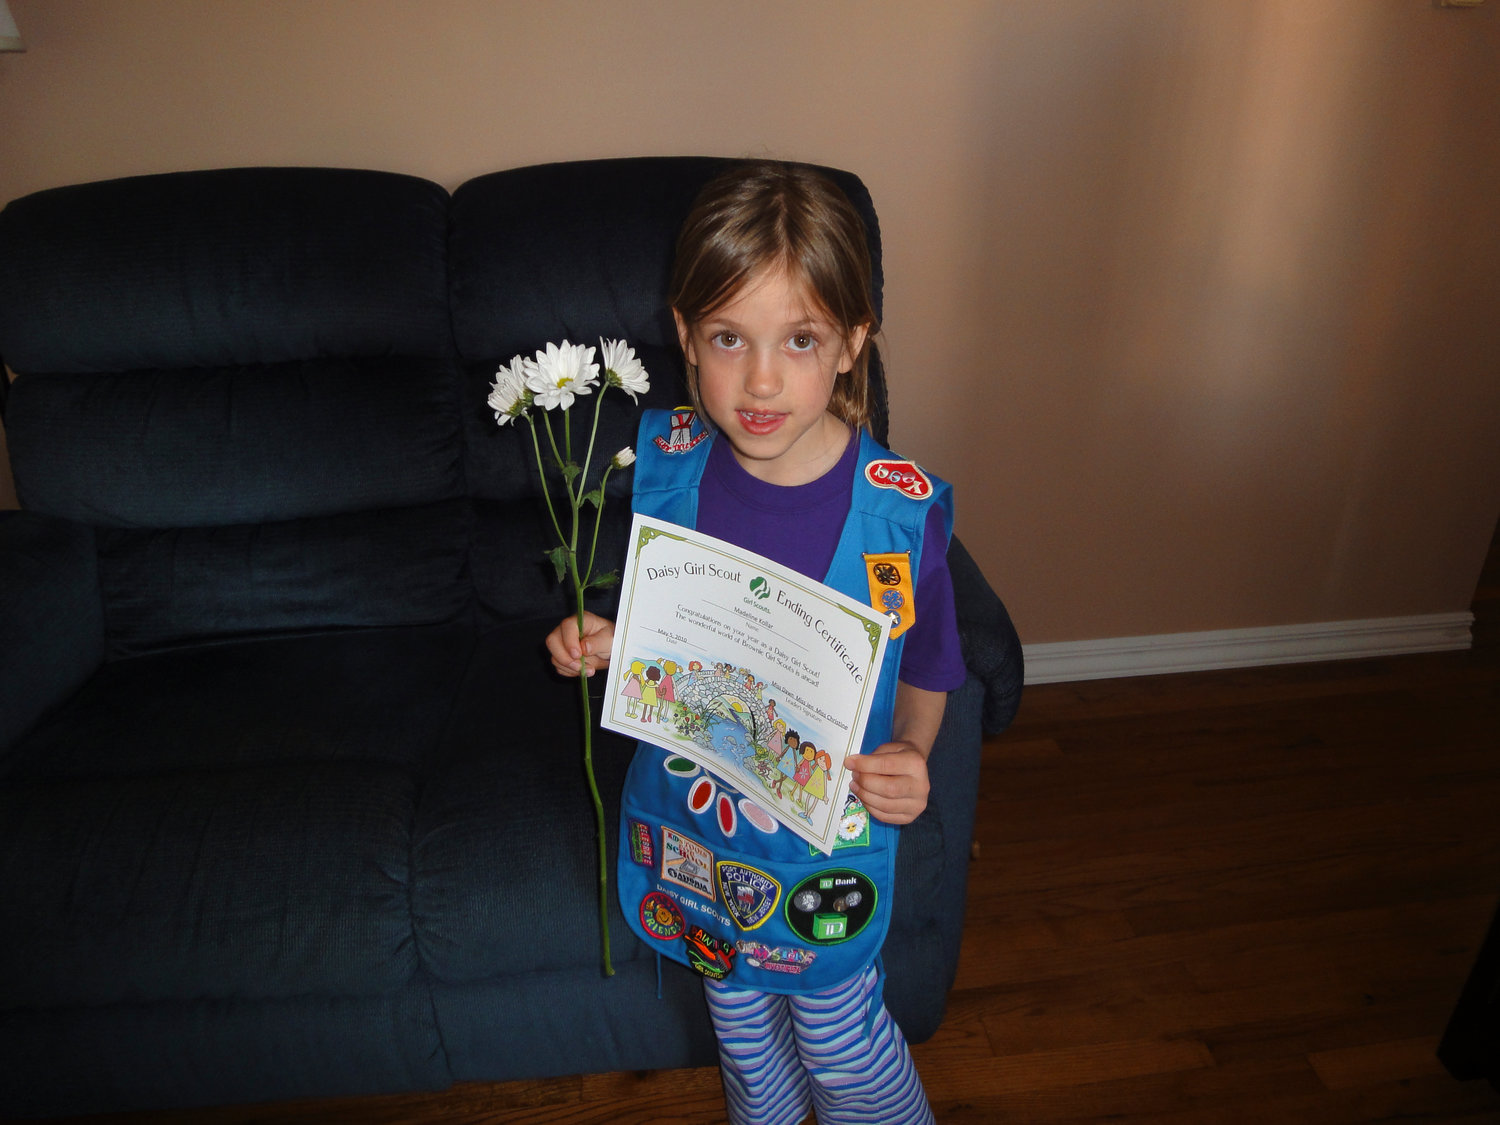 Kollar has been part of the Girl Scout movement since she was a Daisy in kindergarten.